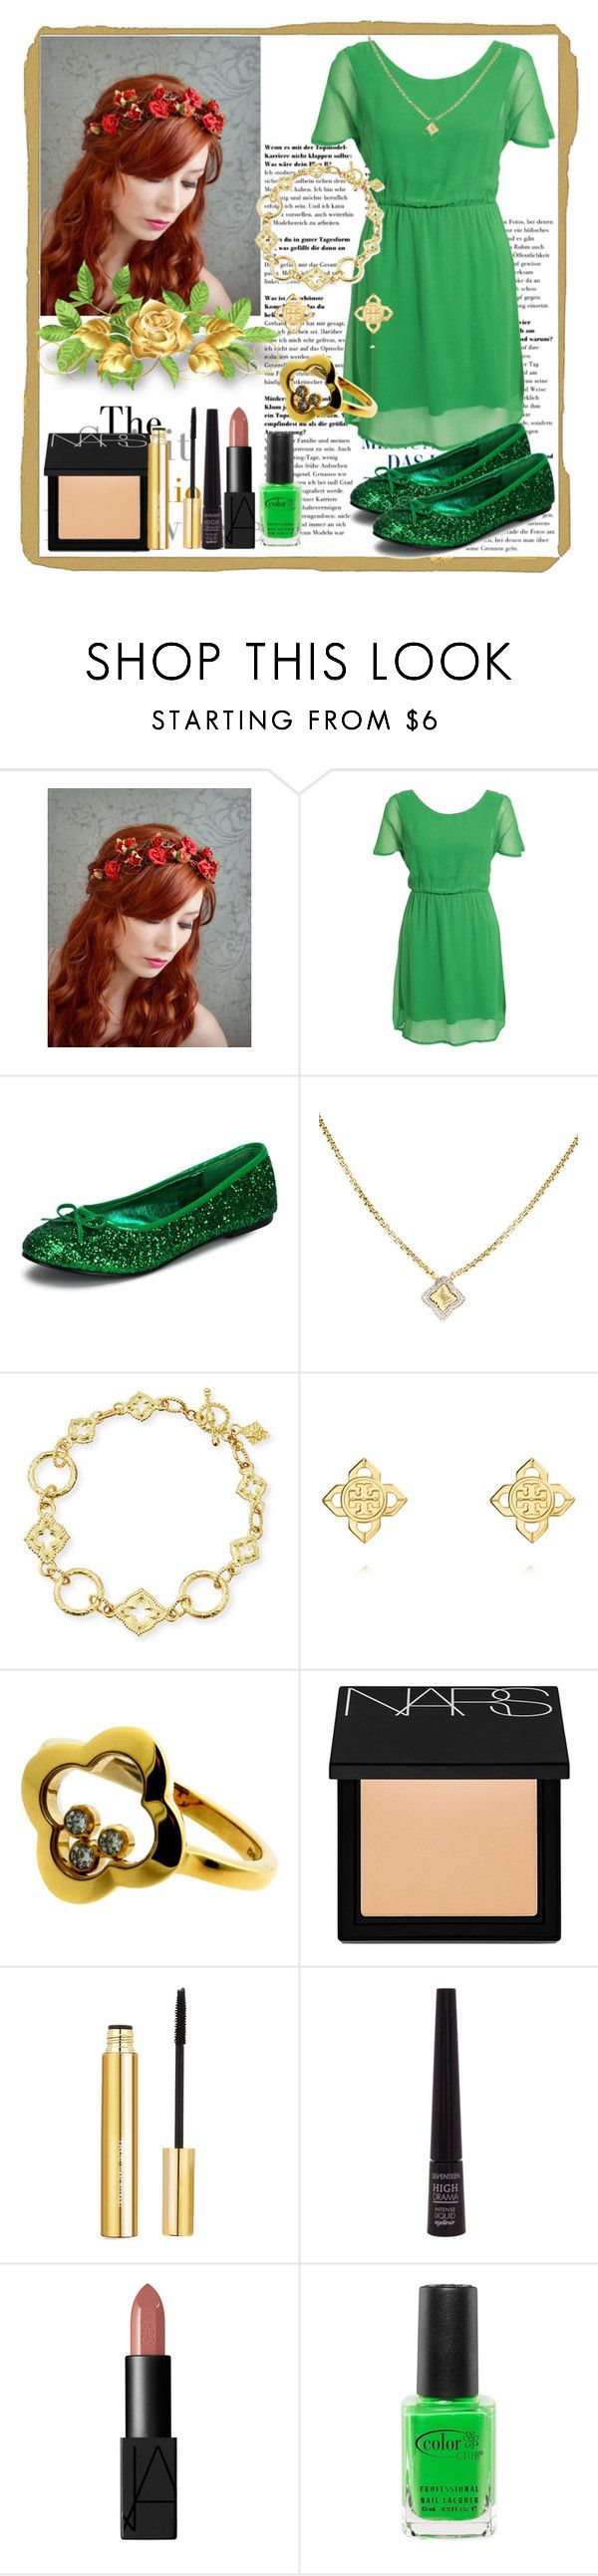 """""""St. Patric's Day Outfit"""" by deedee-pekarik ❤ liked on Polyvore featuring Rut&Circle, David Yurman, Armenta, Tory Burch, Chopard, NARS Cosmetics, Isaac Mizrahi and Color Club"""